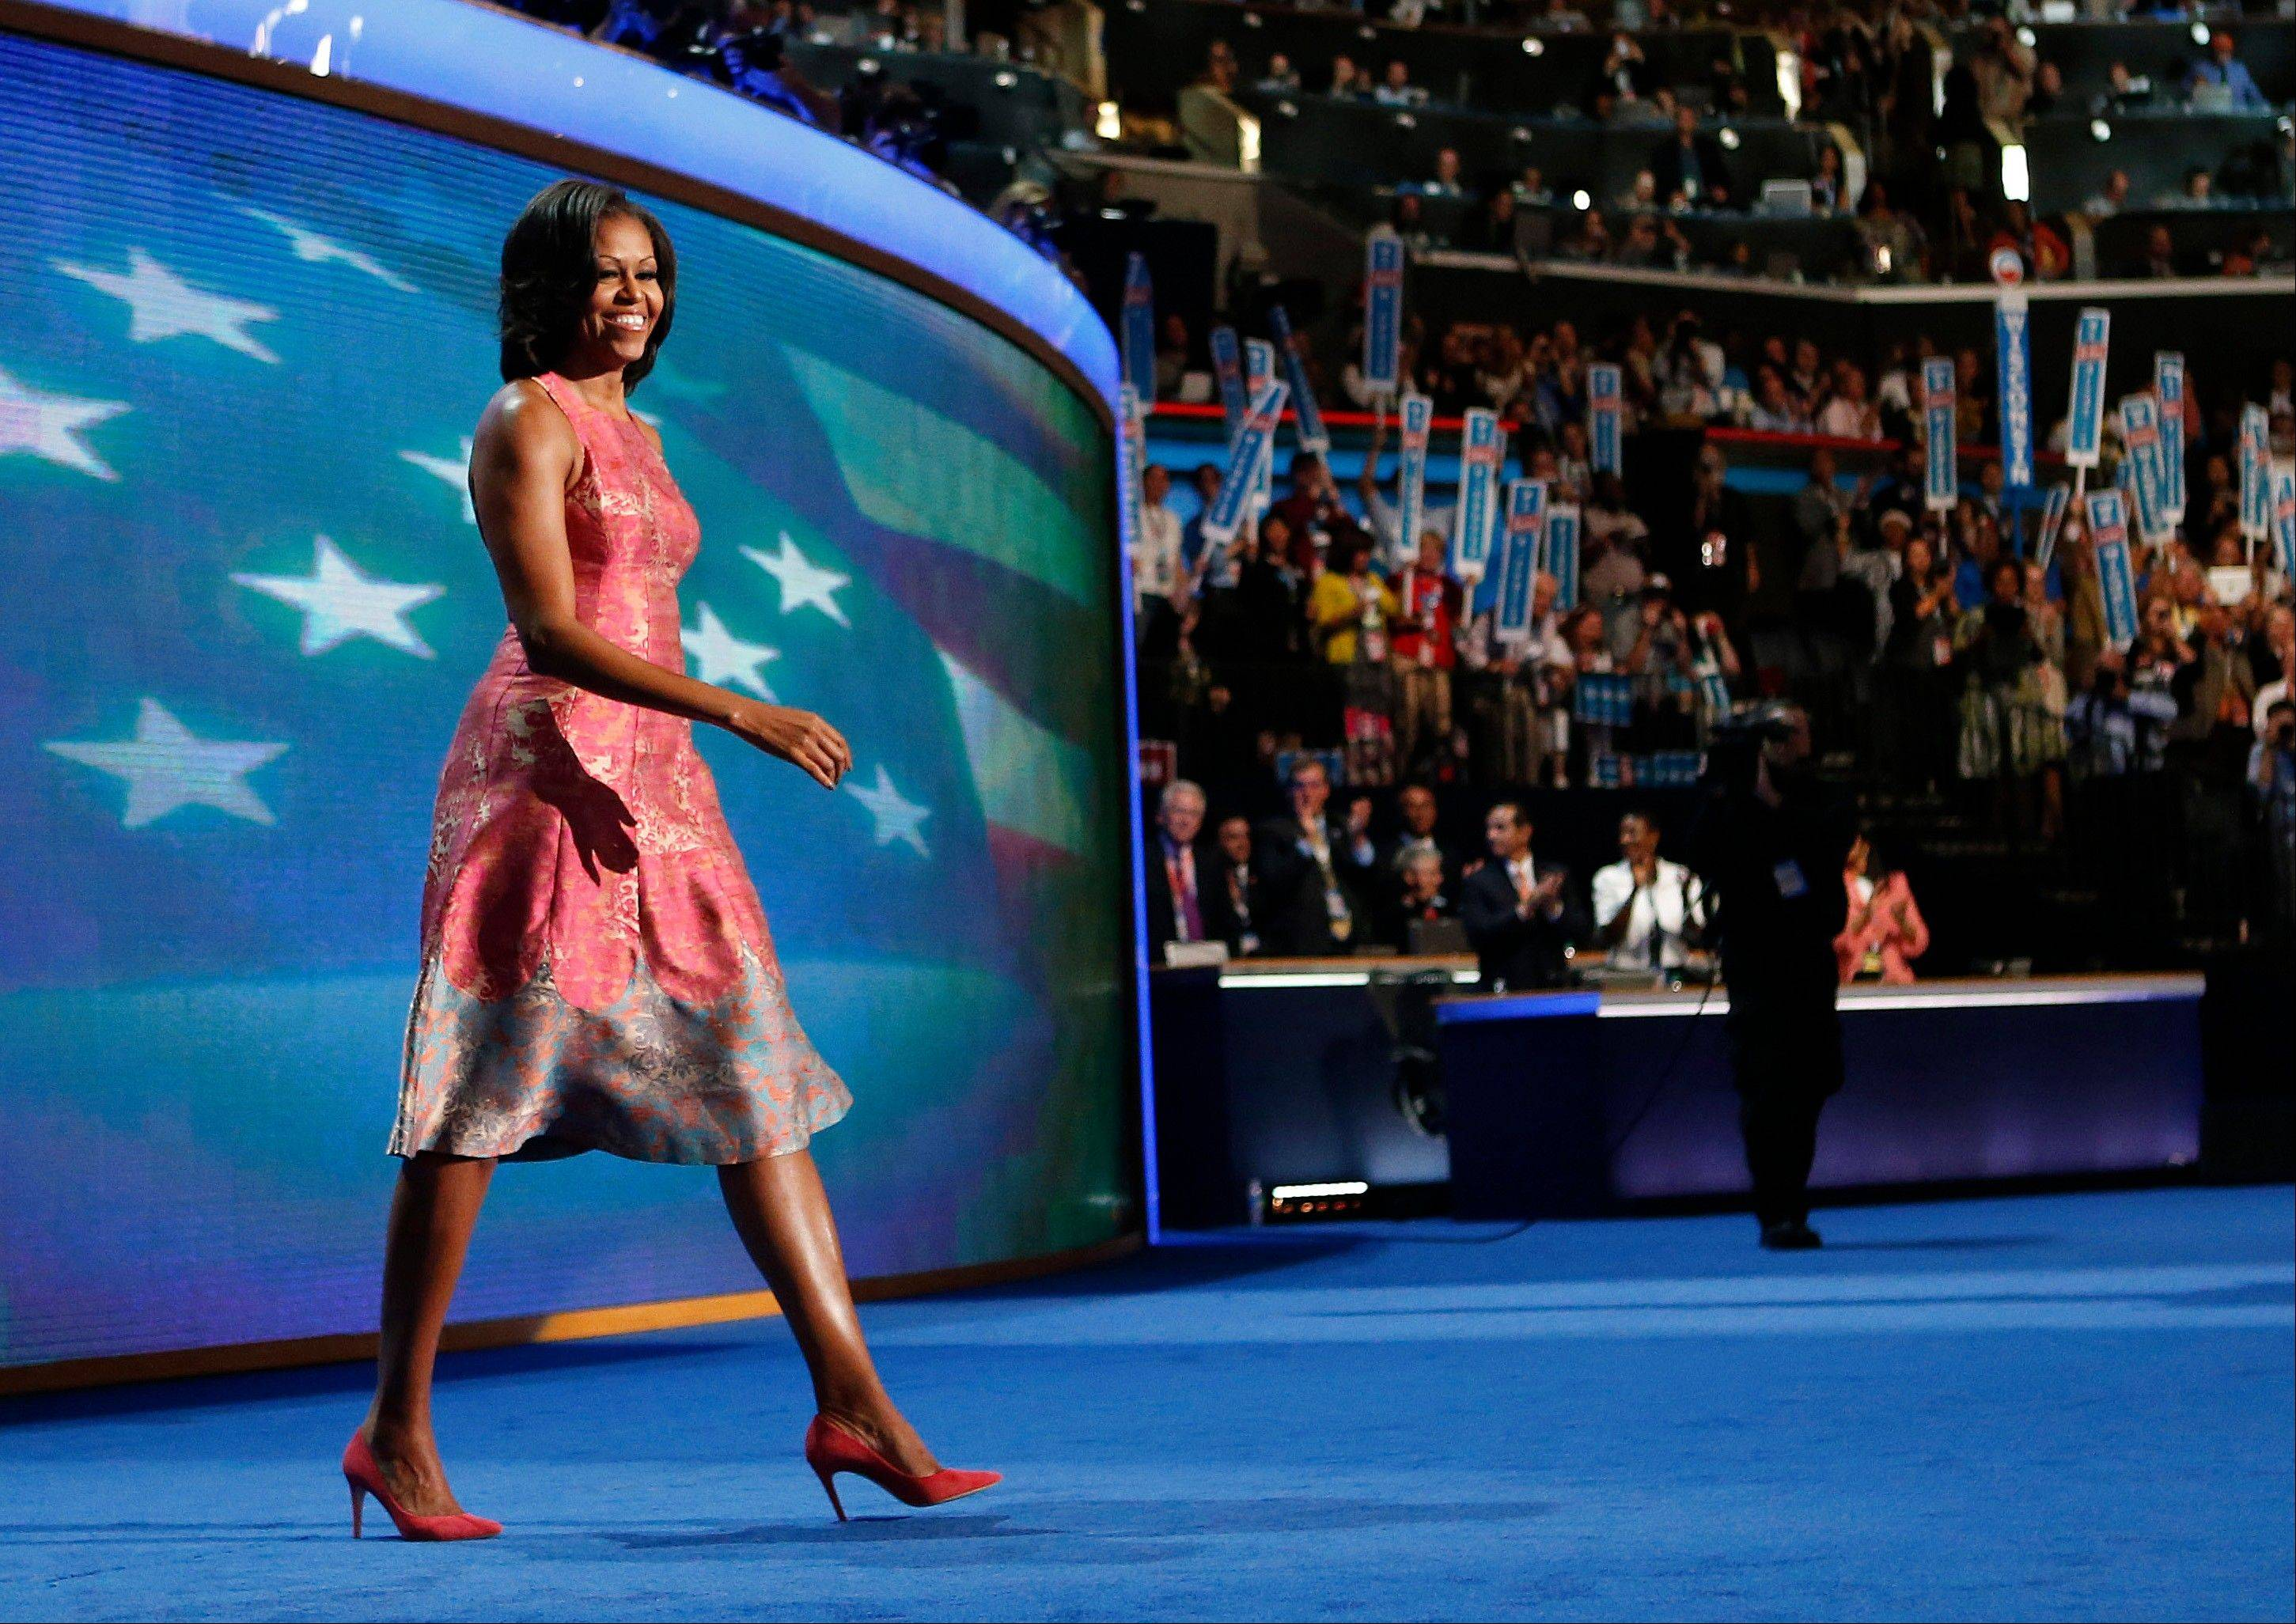 First lady Michelle Obama walks onto the stage at the Democratic National Convention in Charlotte, N.C. Tracy Reese, who designed Obama�s hot pink silk jacquard dress with pale blue trim at the hem, says she�s rushing to make more of them. She told NBC�s �Today� show that the dress will cost under $500.